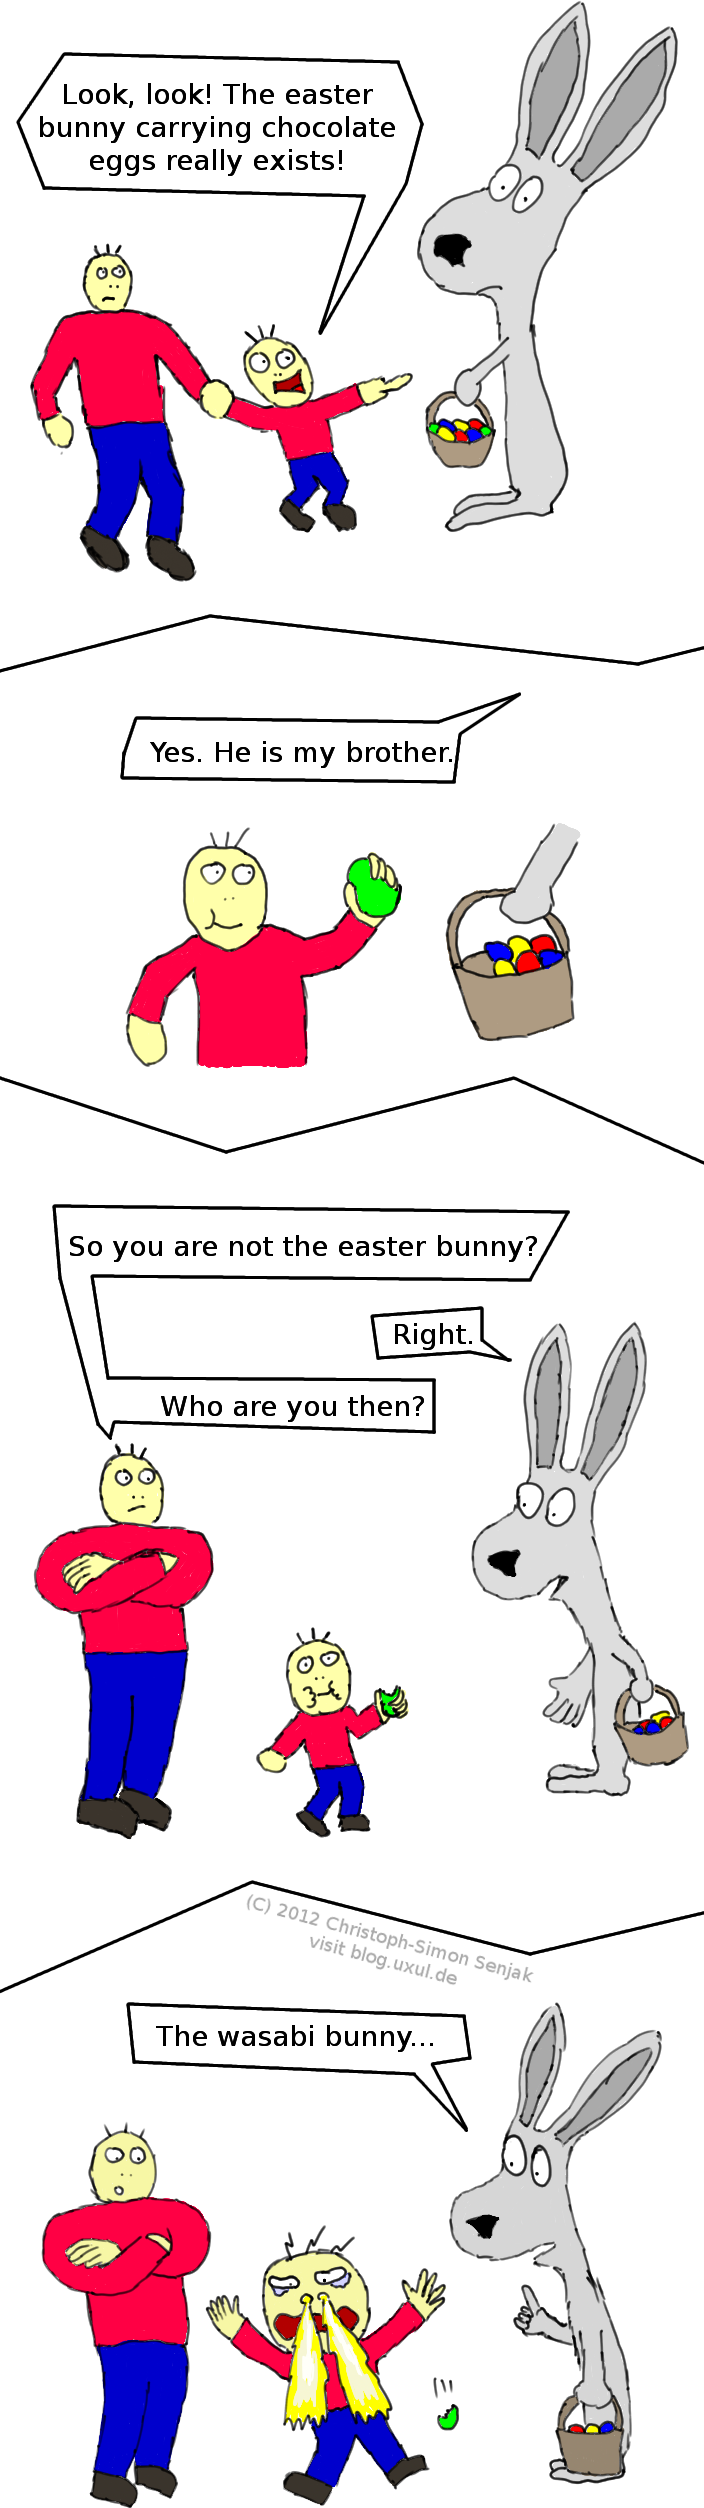 "Panel 1: A man and his child approaching a giant bunny with a basket of colored eggs who looks apathetic. Child: ""Look, look! The easter bunny carrying chocolate eggs really exists!"" -- Panel 2: The child takes one egg out of the basket. Bunny: ""Yes, He is my brother."" -- Panel 3: The child takes a bit of the egg, and looks slightly confused. Man: ""So you are not the easter bunny?"" Bunny: ""Right."" Man: ""Who are you then?"" -- Panel 4: Bunny: ""The wasabi bunny..."" The child drops the egg, screams, has tears in his eyes, and fire is coming from his nose."